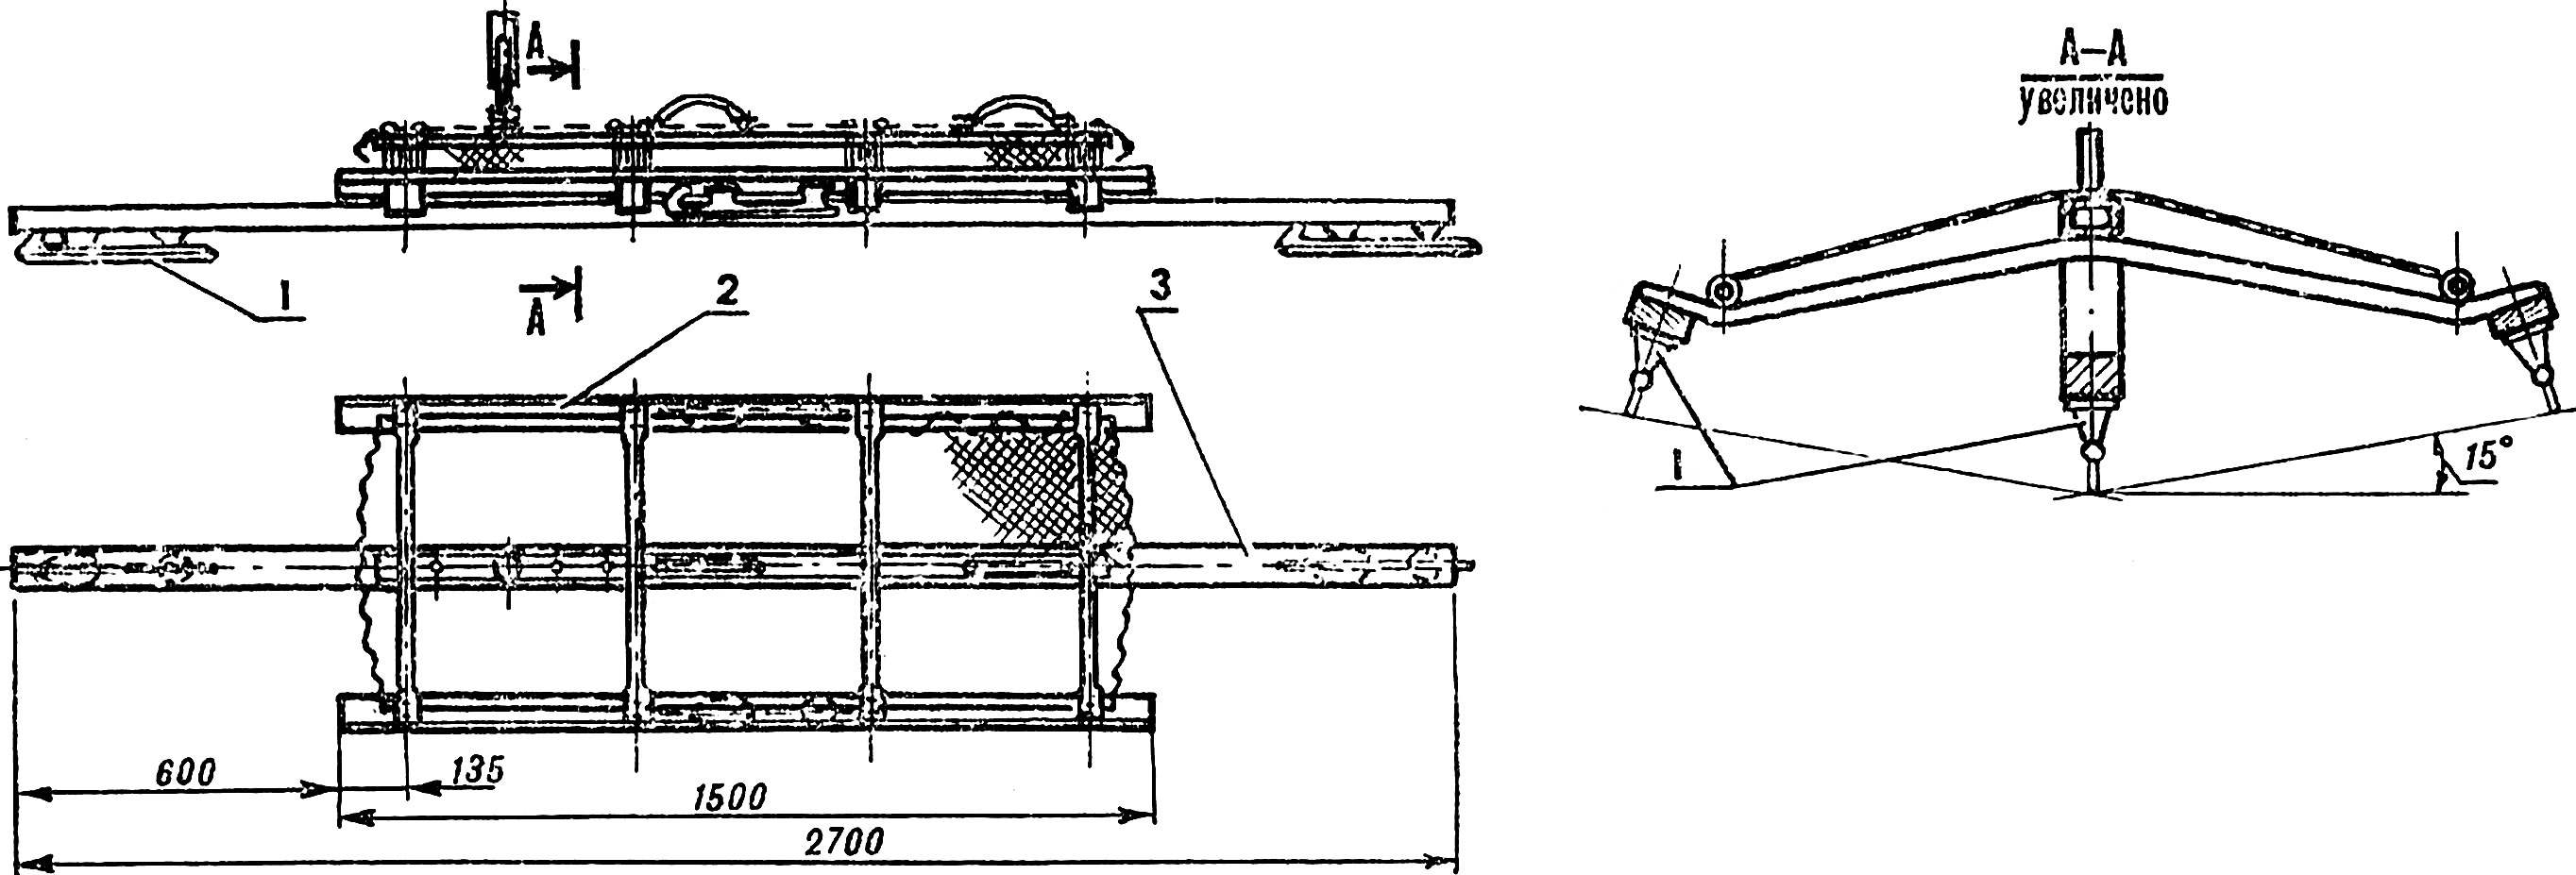 Fig. 3. The body of the glider Assembly.